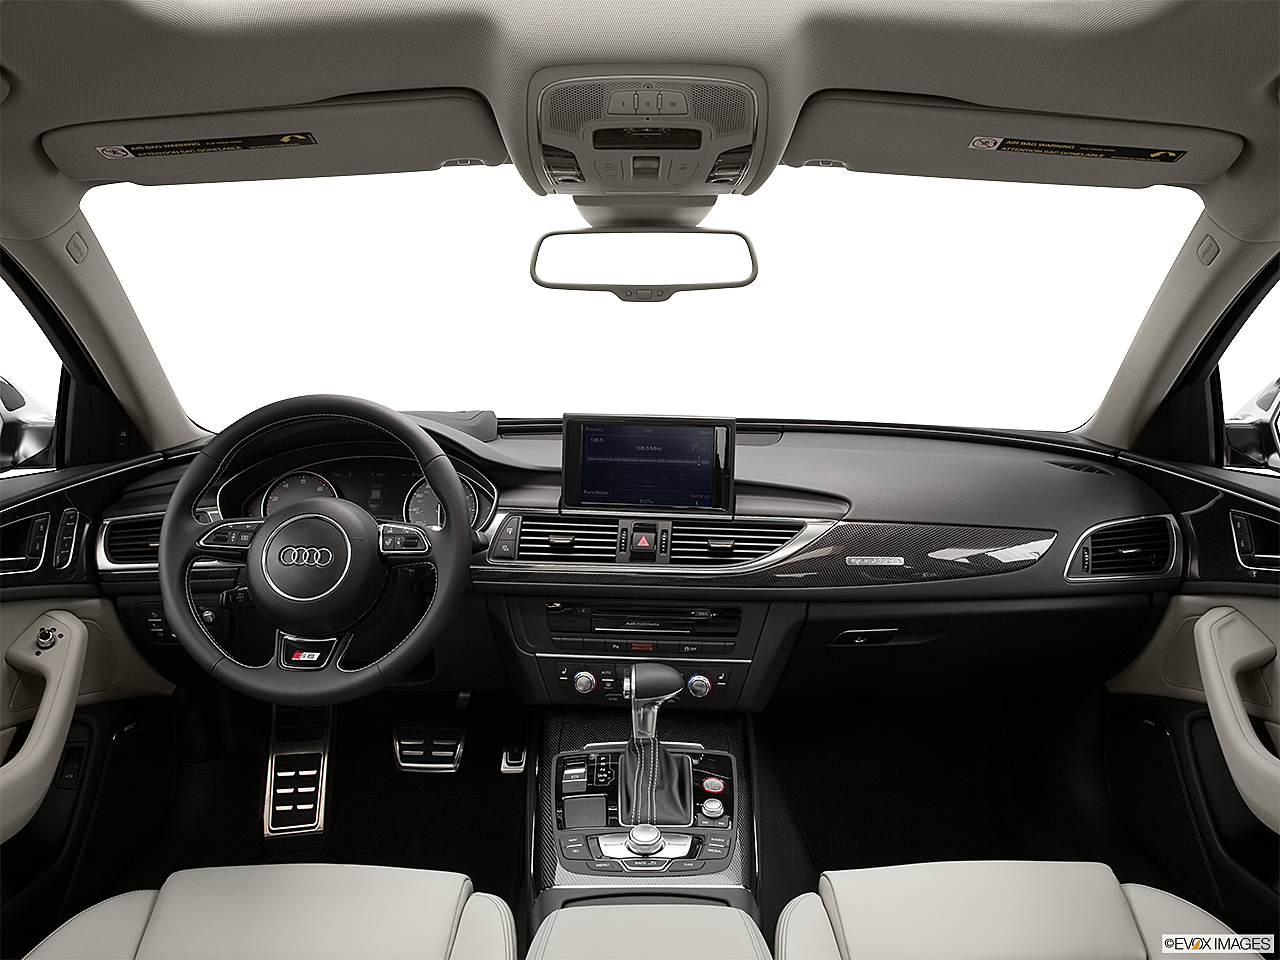 2013 Audi S6 4.0TFSI Seven-speed S Tronic transmission, centered wide dash shot